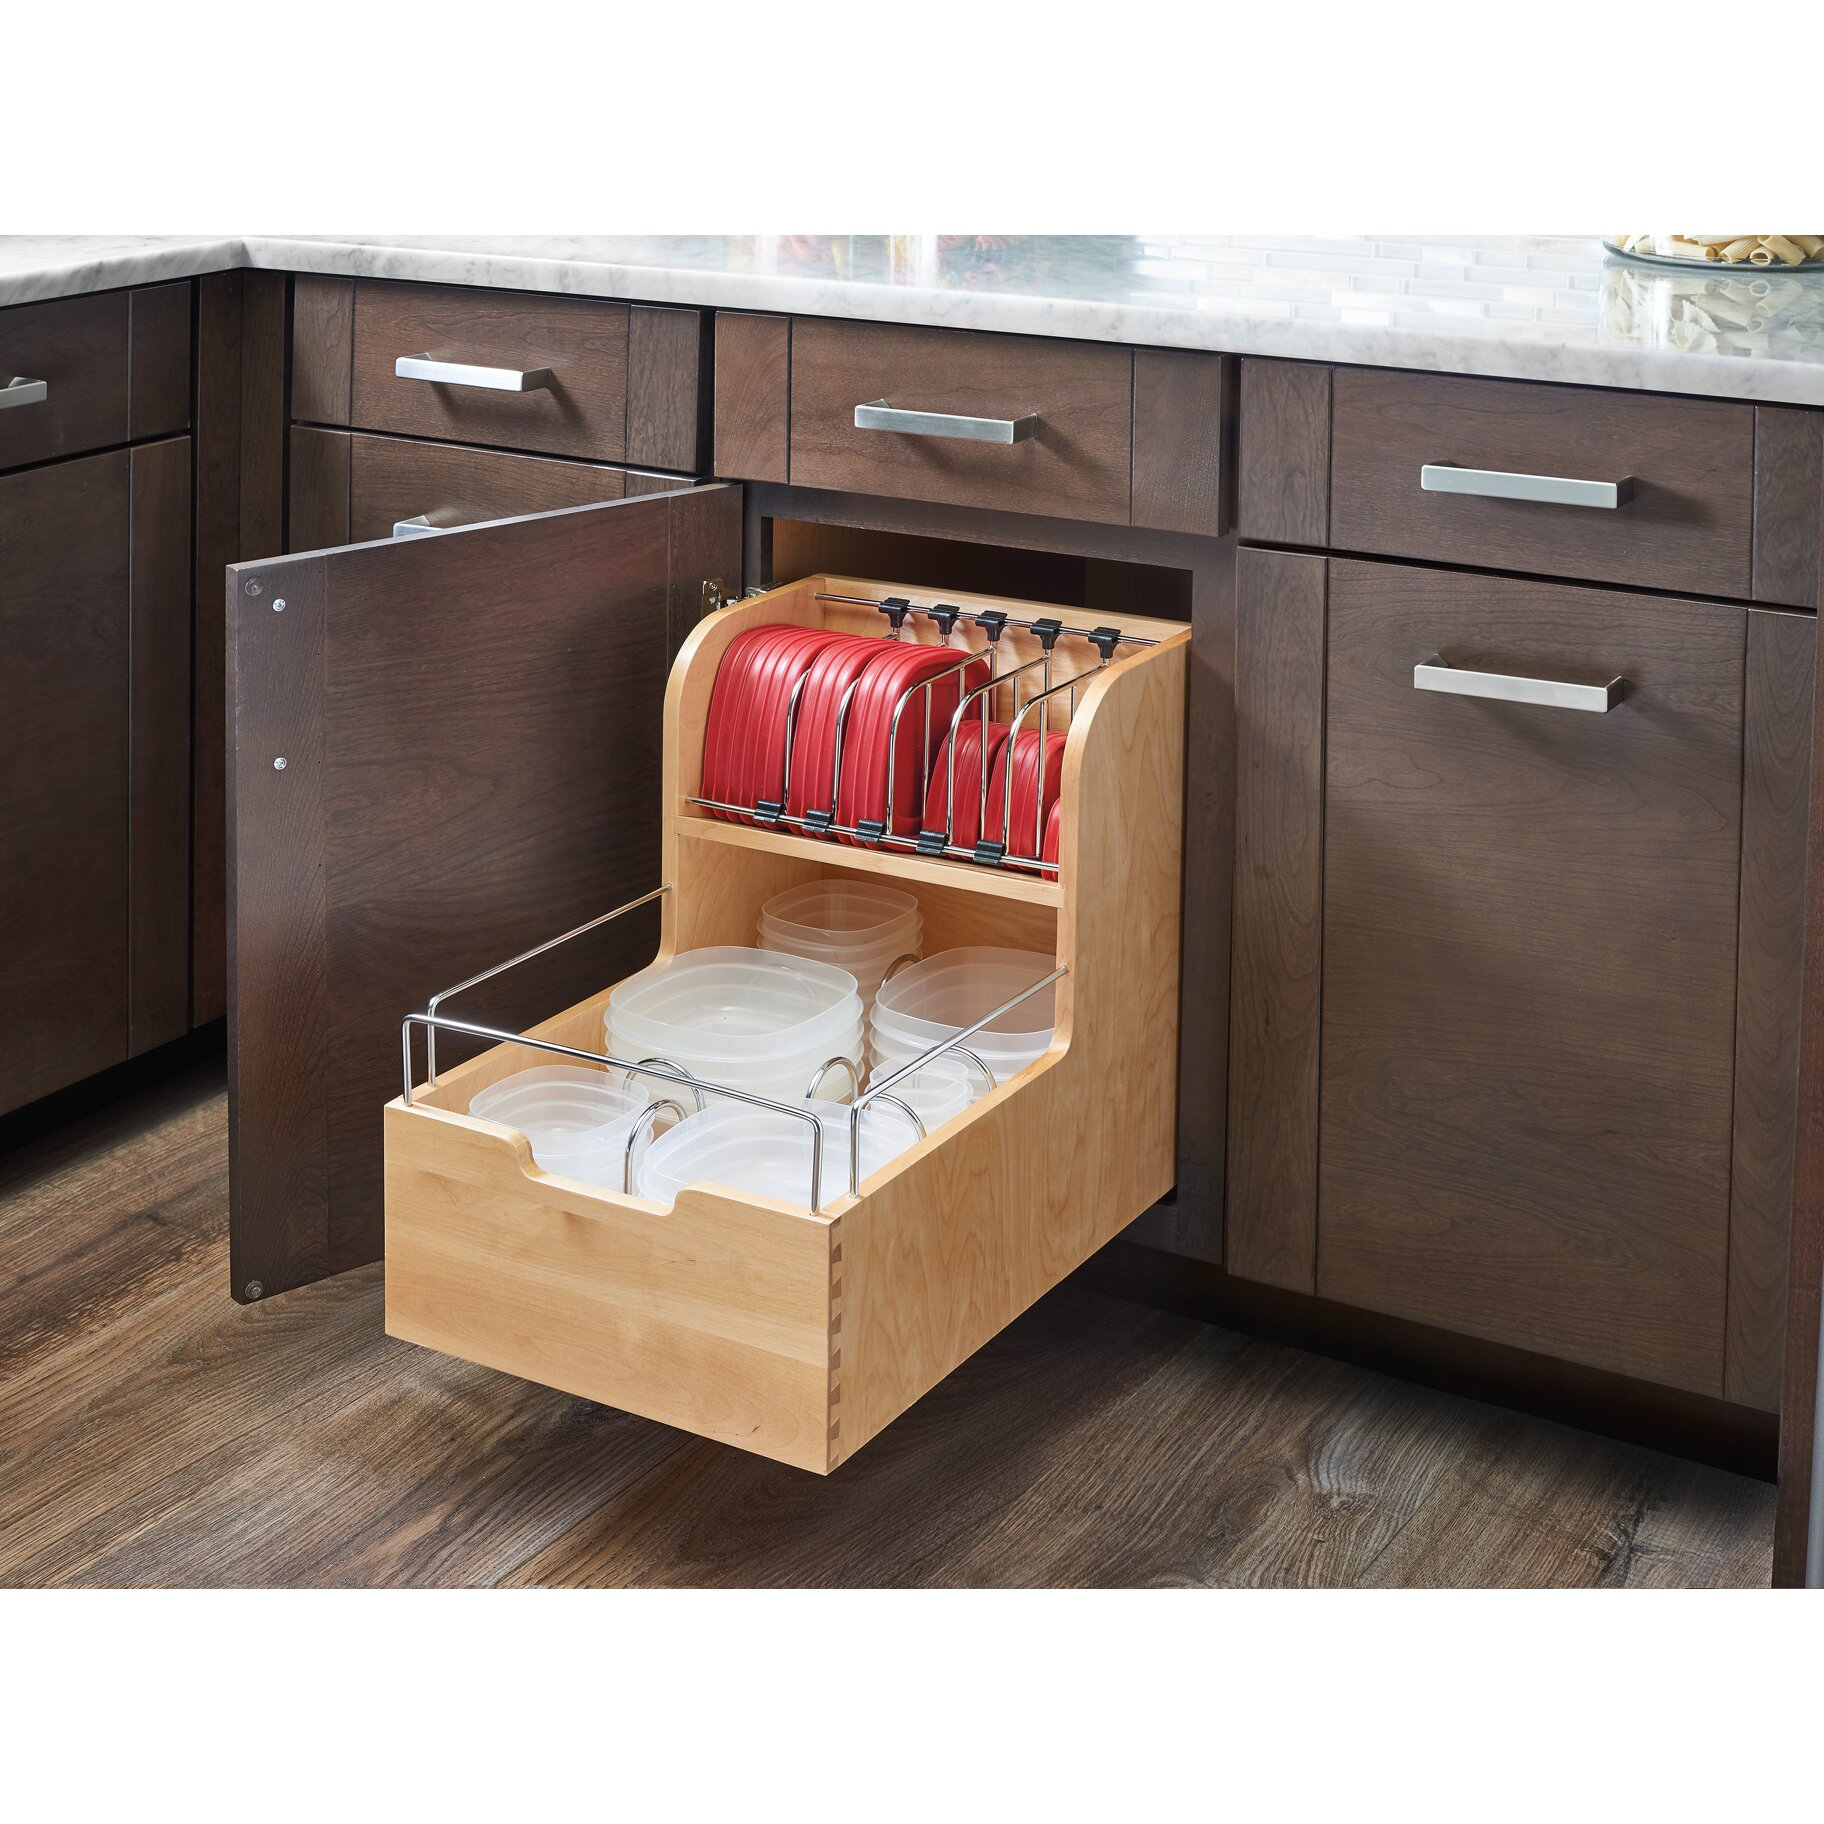 Rev a shelf wood food storage container organizer for base for Kitchen cabinet organizers